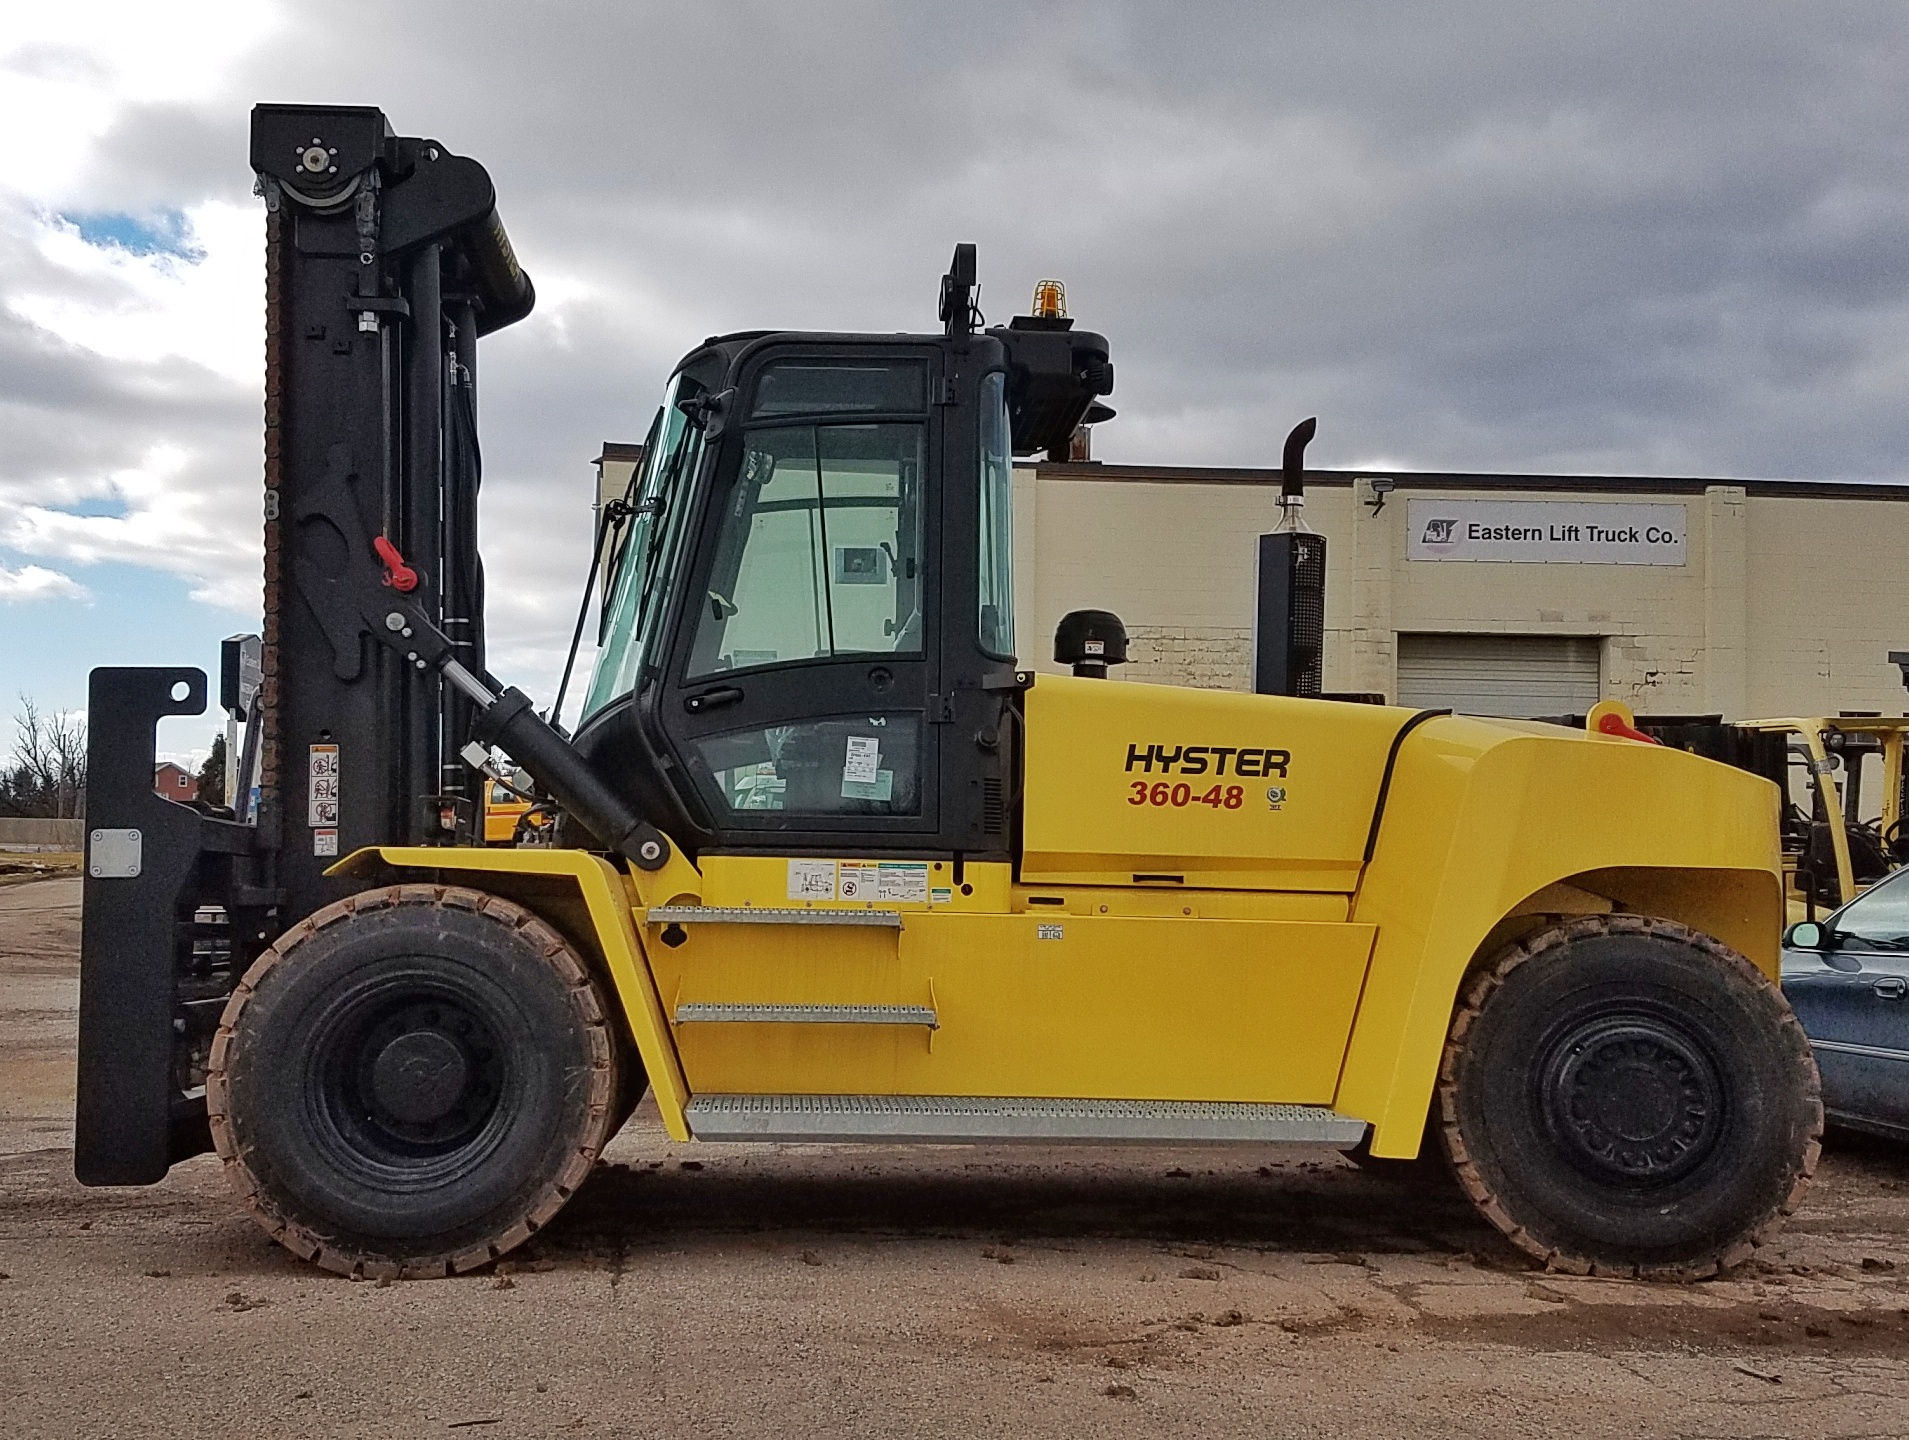 Similar Used Equipment - 2016 Hyster H360-48HD